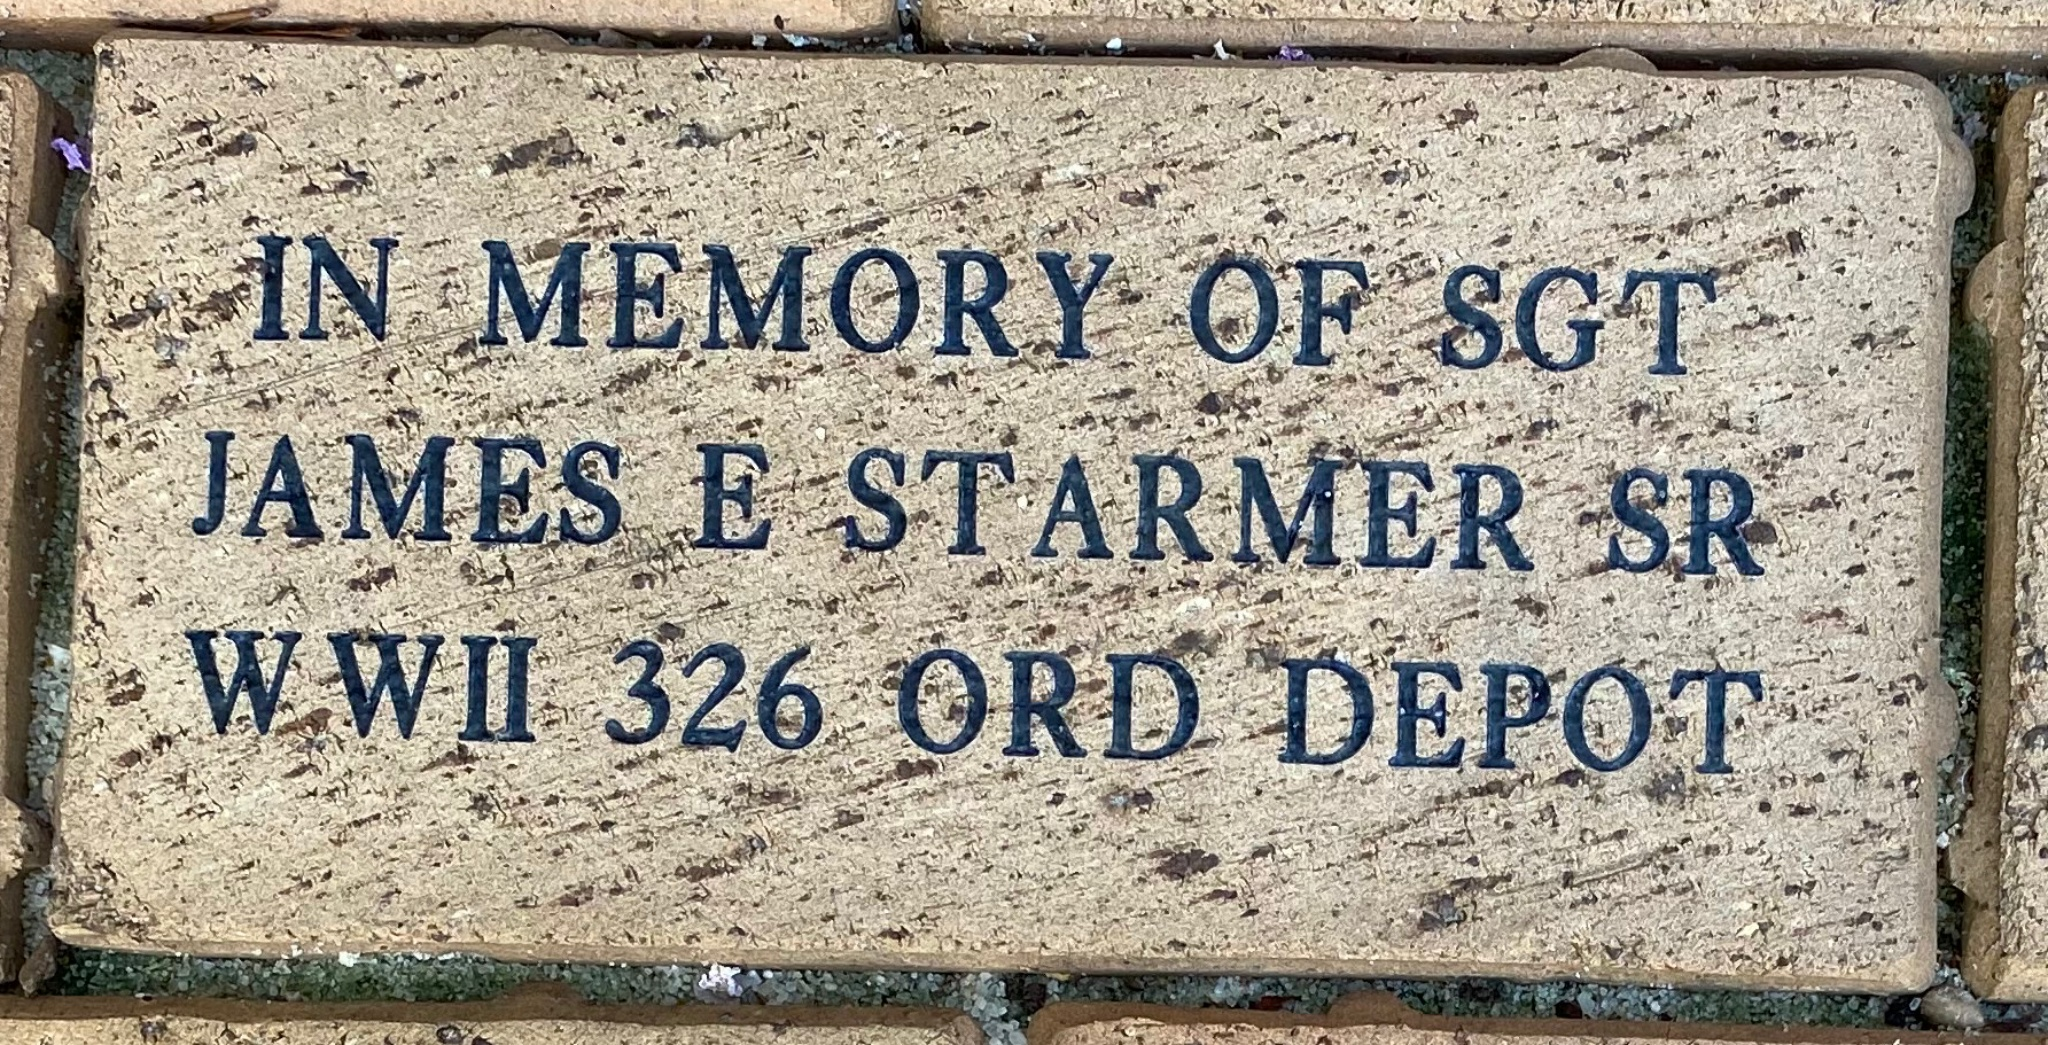 IN MEMORY OF SGT  JAMES E STARMER SR  WWII 326 ORD DEPOT